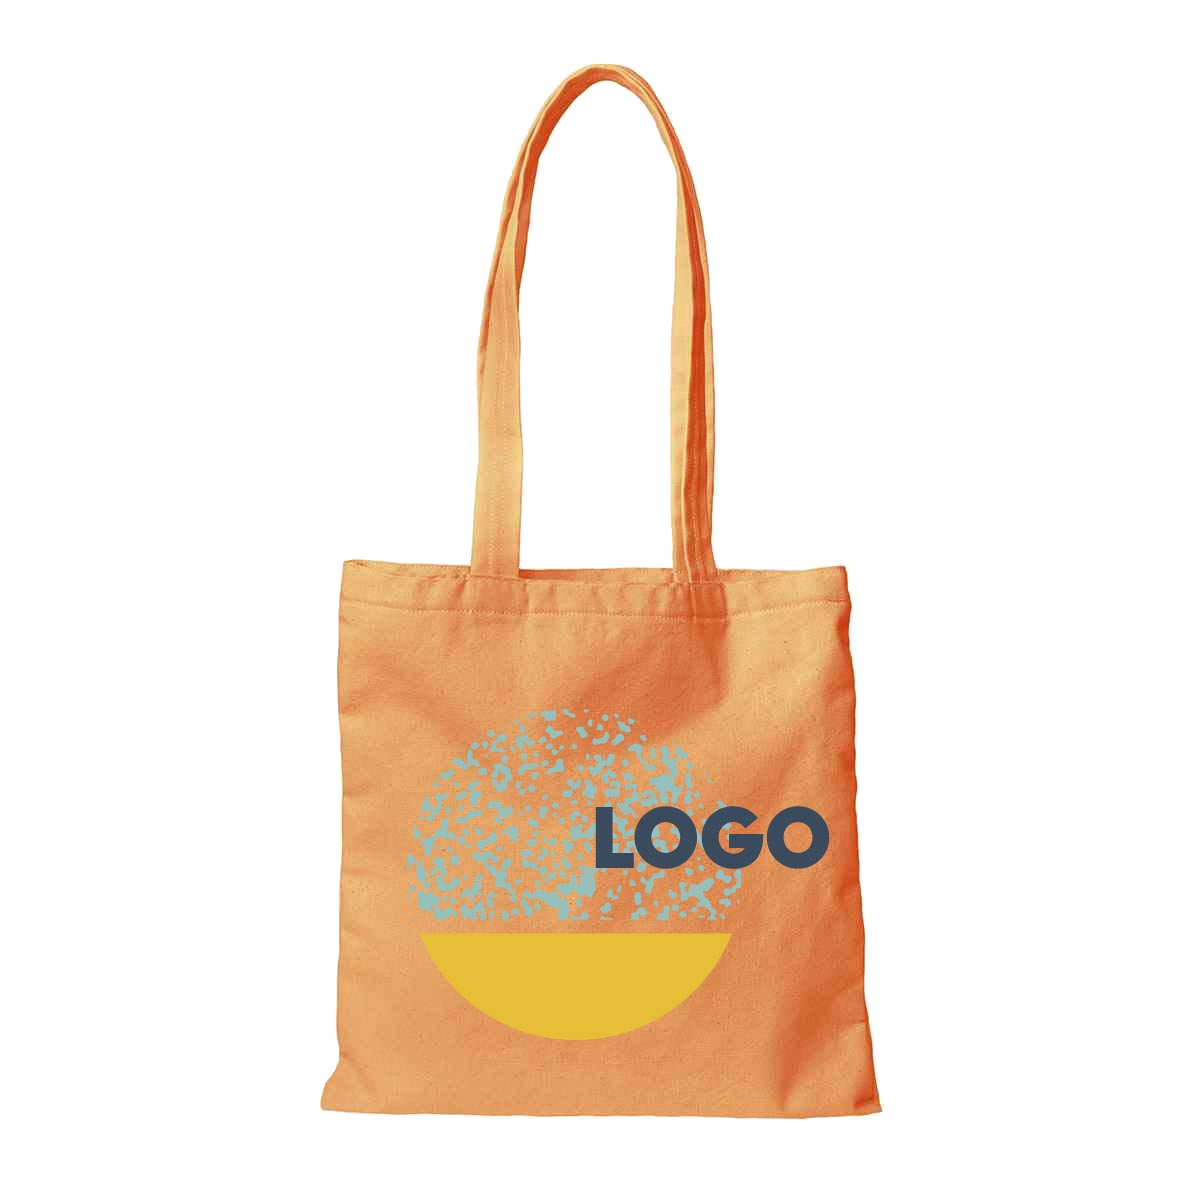 313744 premium canvas square tote three color full bleed imprint